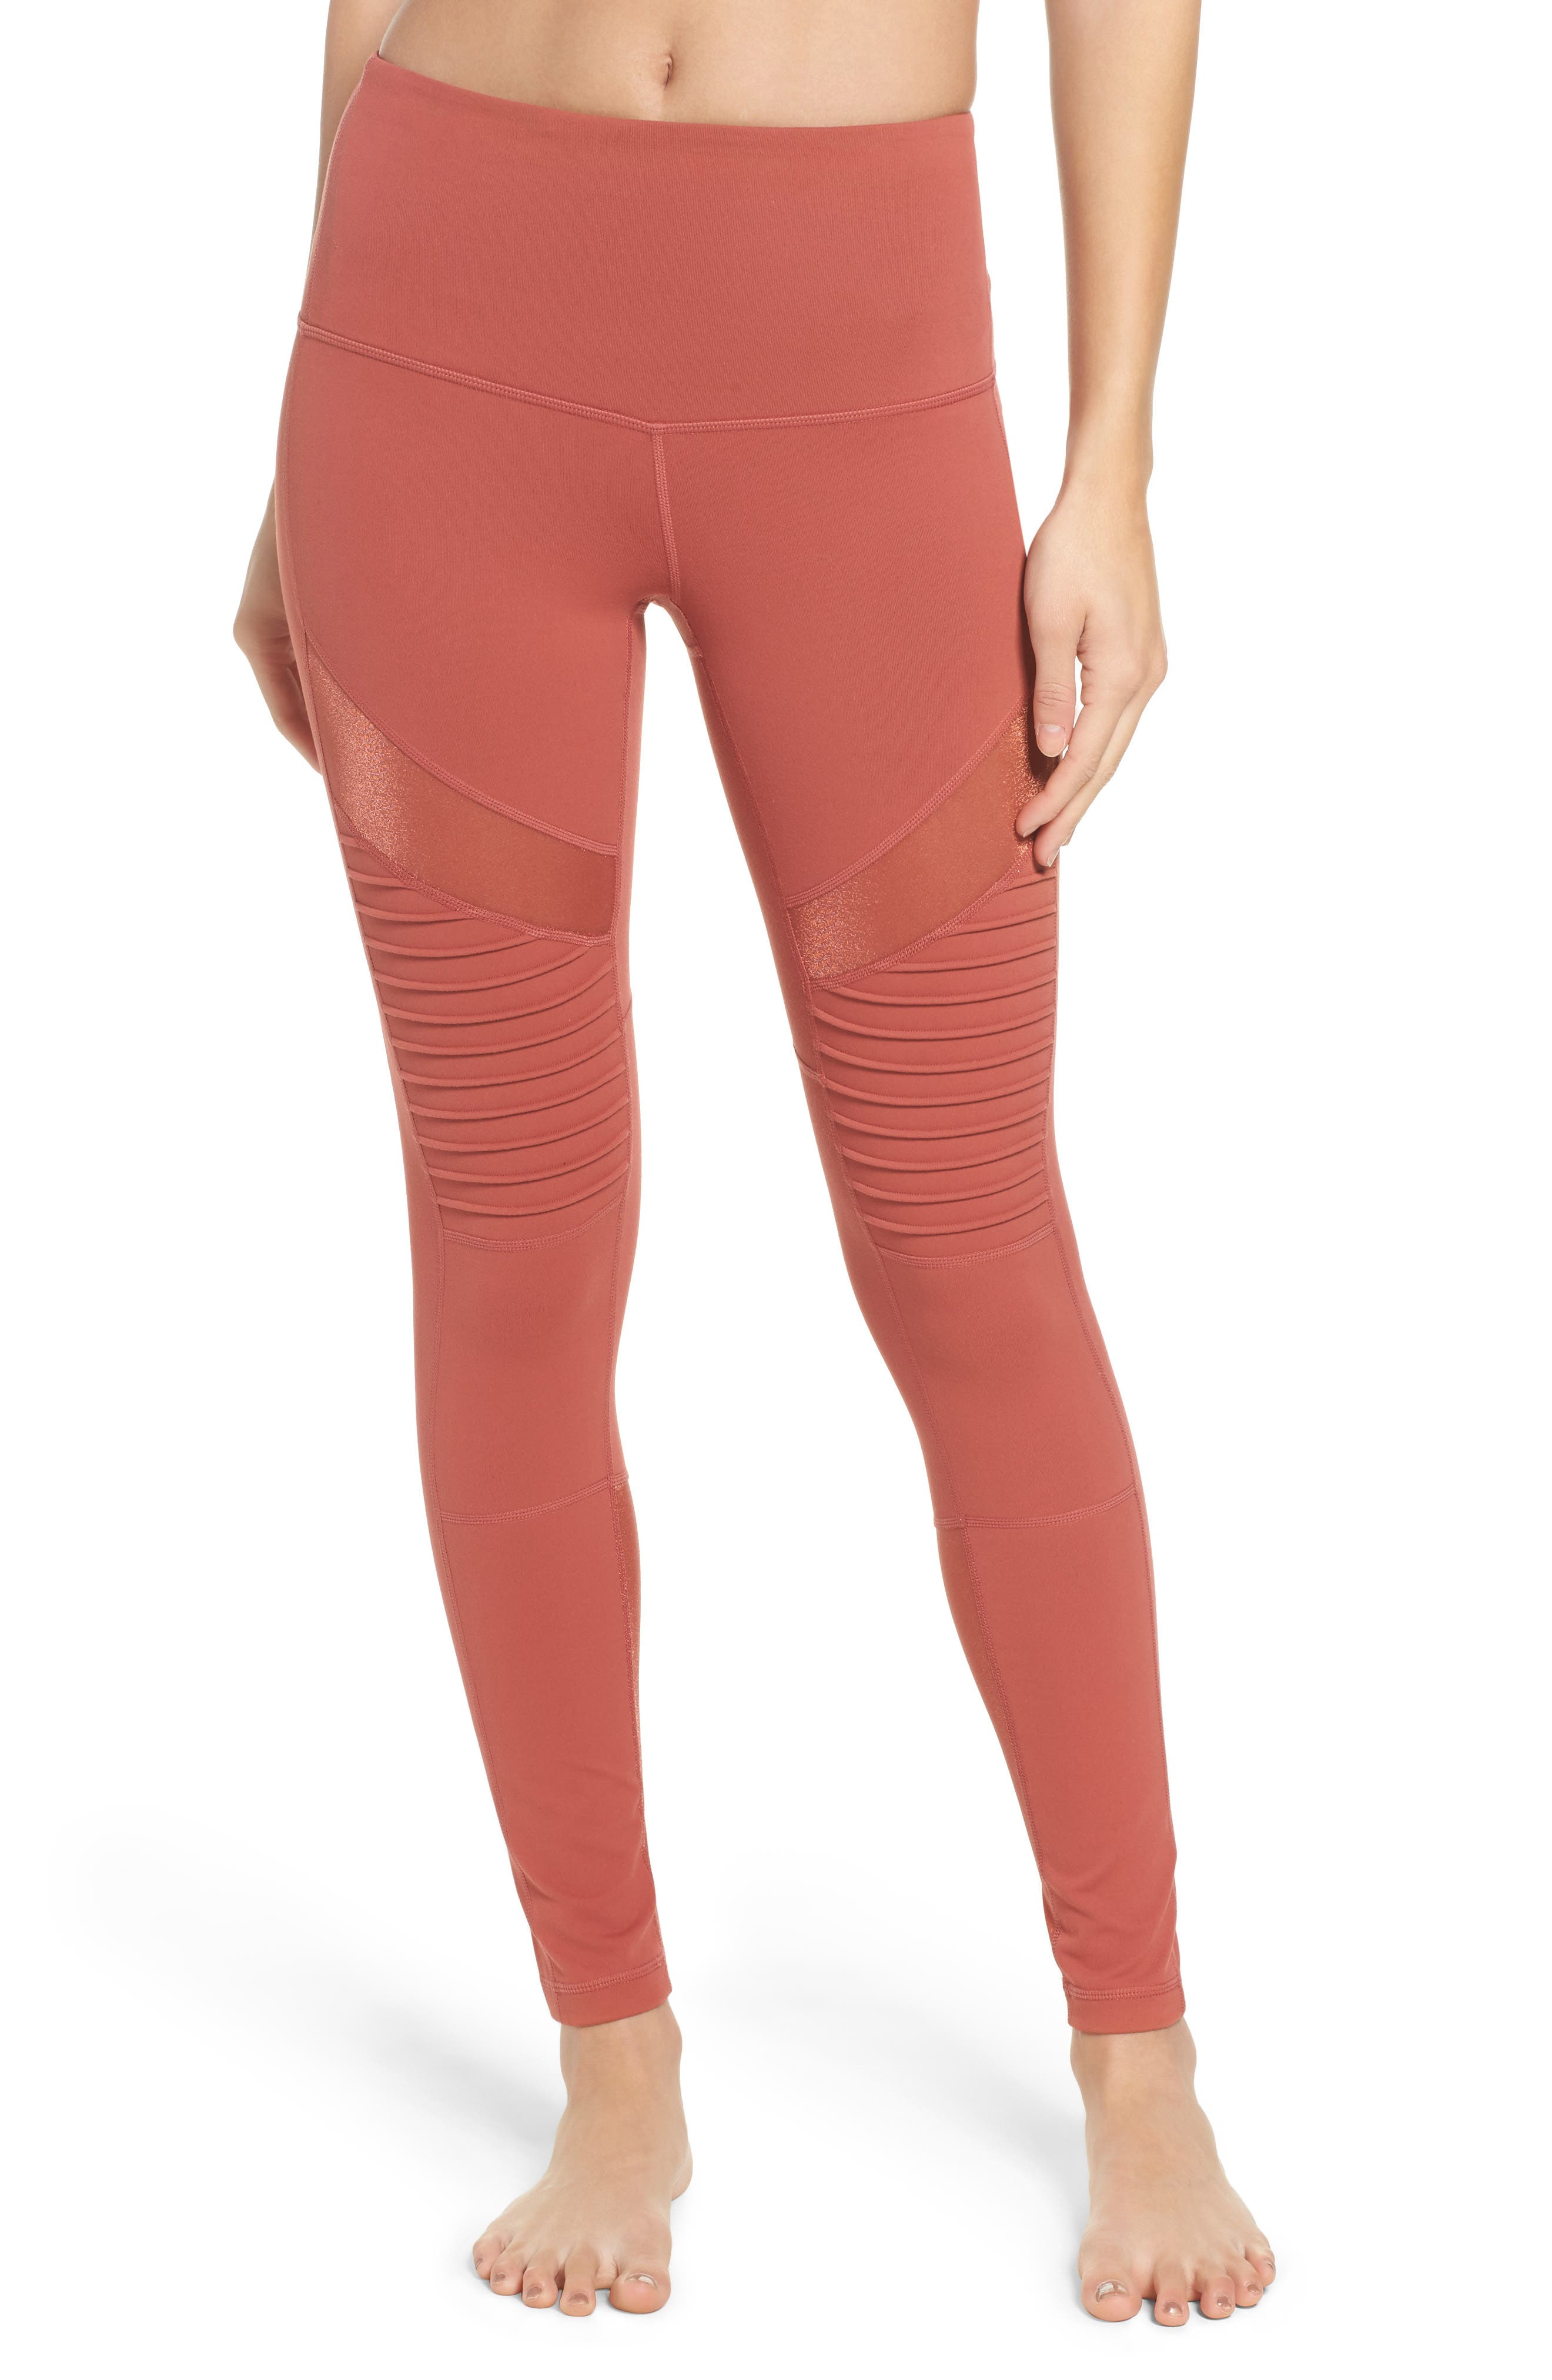 Main Image - Zella Autumn High Waist Moto Ankle Leggings